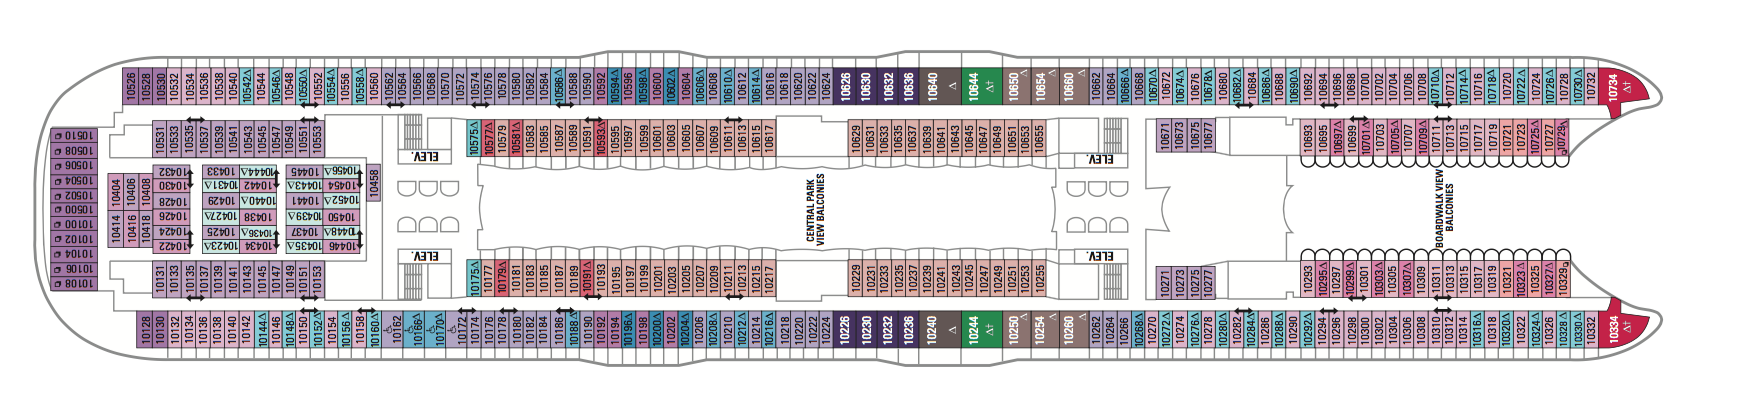 Royal Caribbean International Symphony of the Seas Deck Plans Deck 10.png